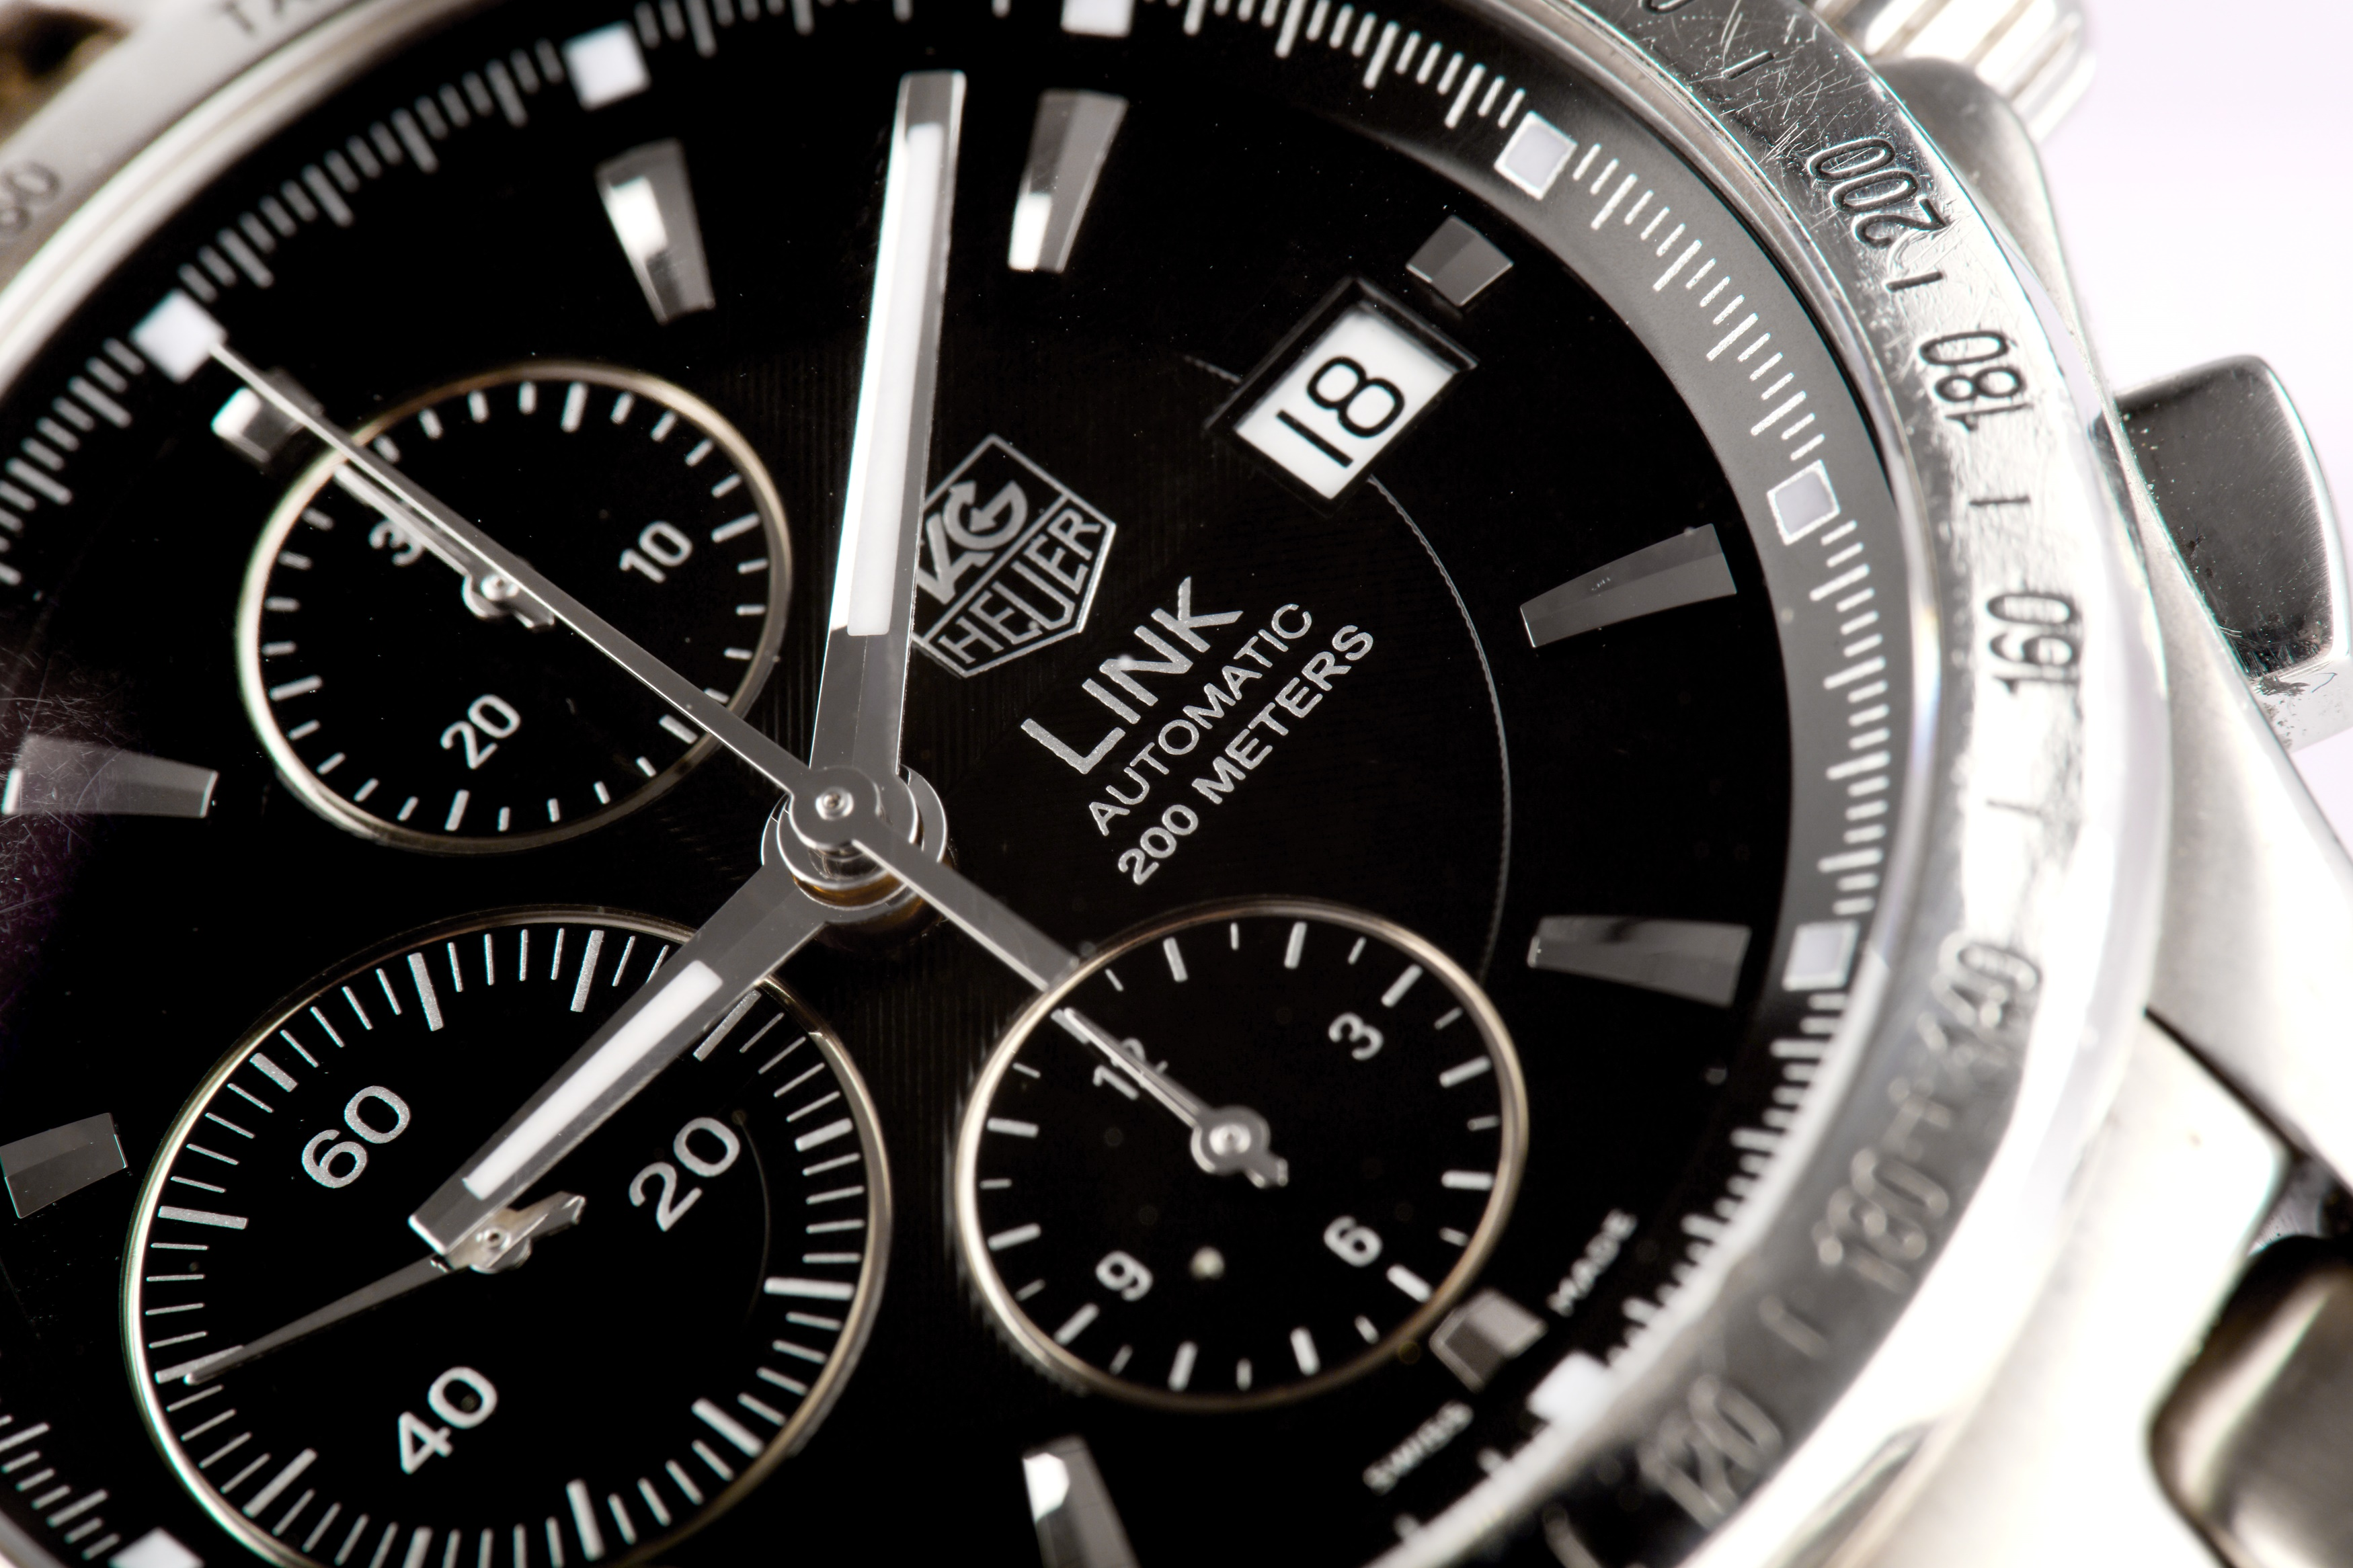 TAG HEUER - Image 2 of 5